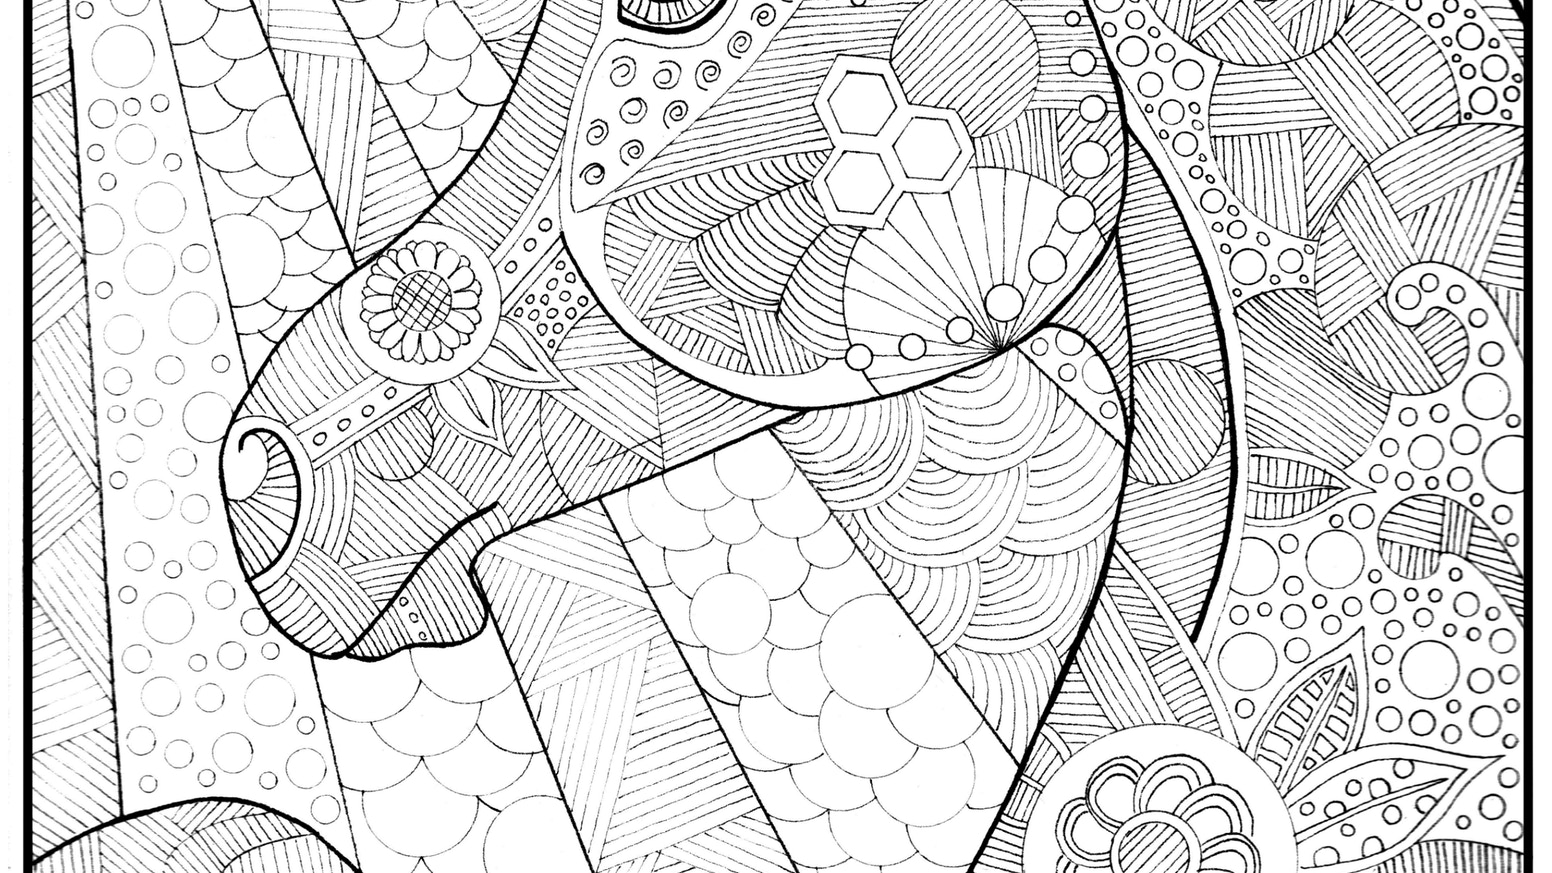 Santa Lucia Coloring Pages With Adult Book Page Digital Weekly Subscription Service By